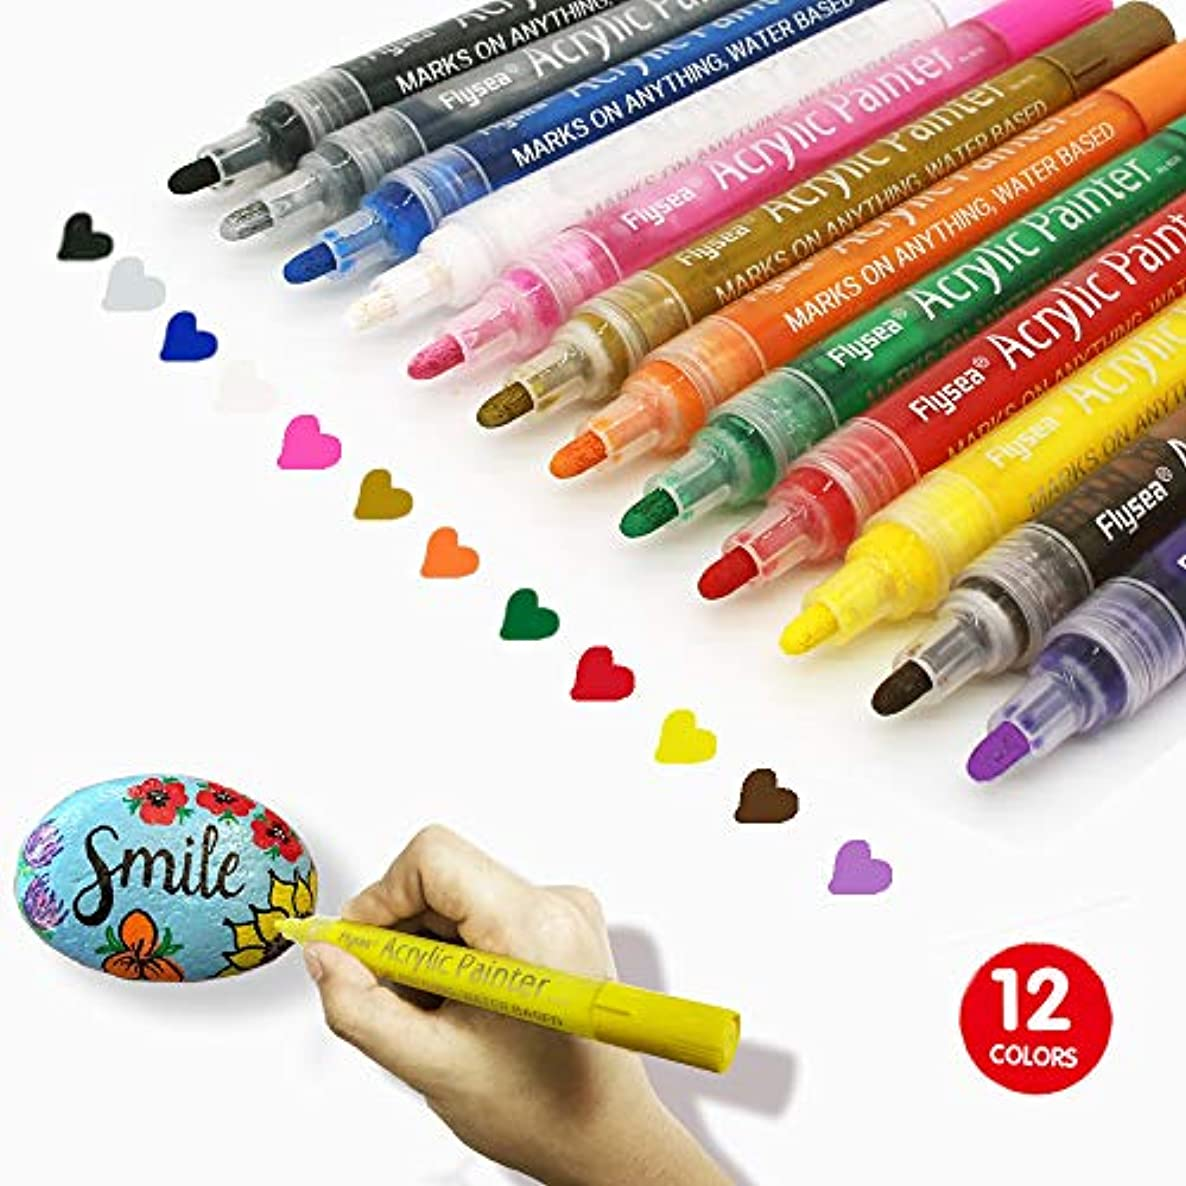 Acrylic Oil Paint Marker Pens Set of 12 Colors Medium Tip Water Based Pen for Rocks Painting, Ceramic, Glass, Wood, Fabric, Canvas, Mugs, DIY, Card Making, Photo Album, School Project, Glass, Metal